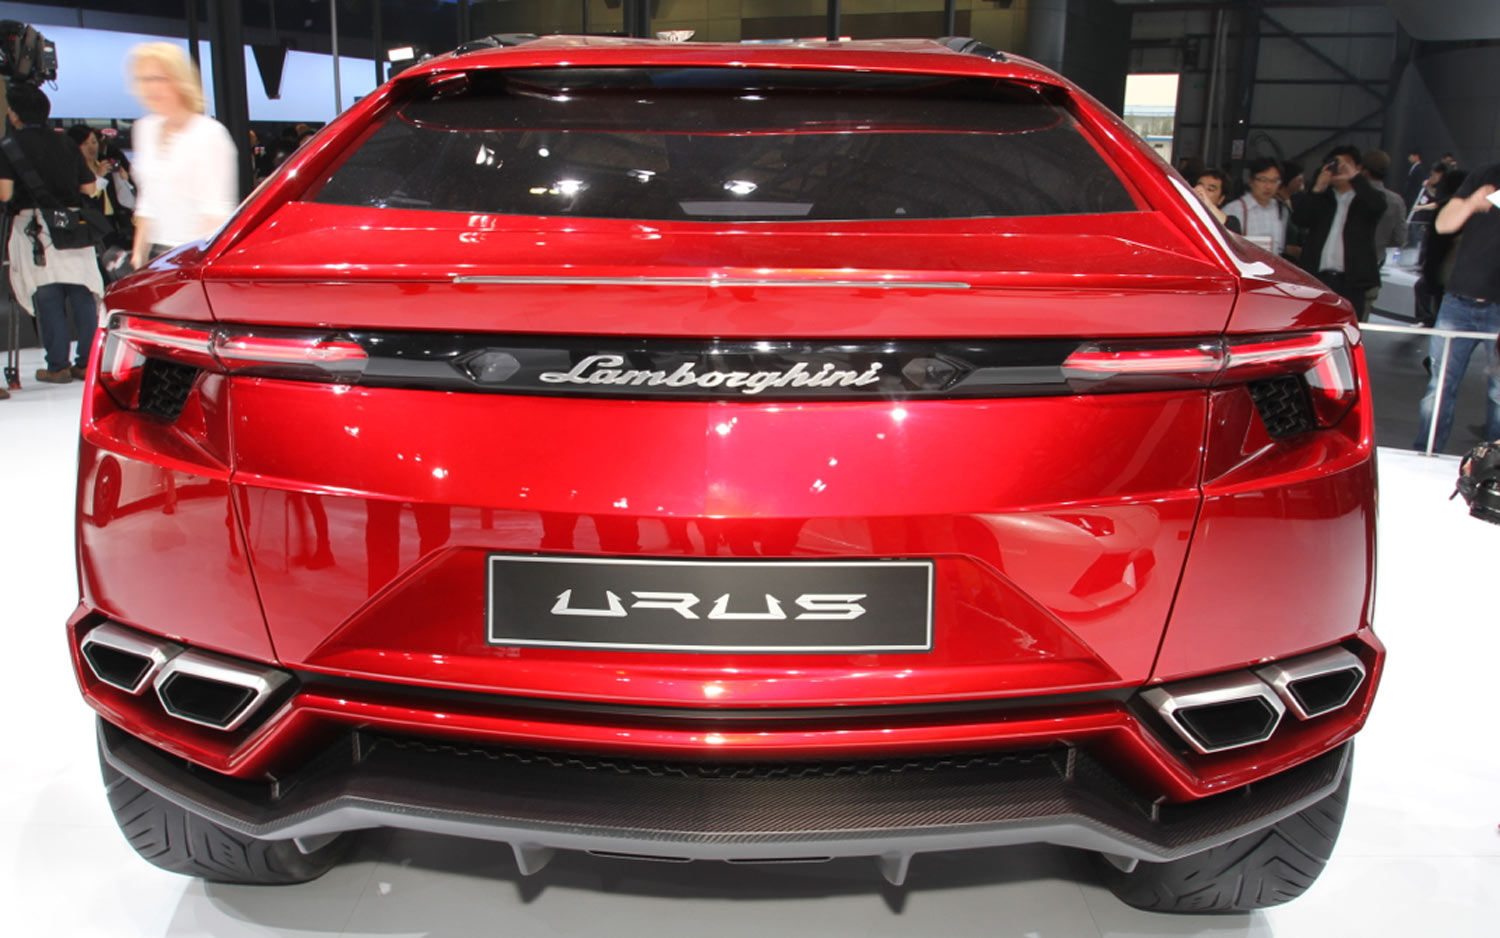 lamborghini urus le suv disponible partir de 2018. Black Bedroom Furniture Sets. Home Design Ideas